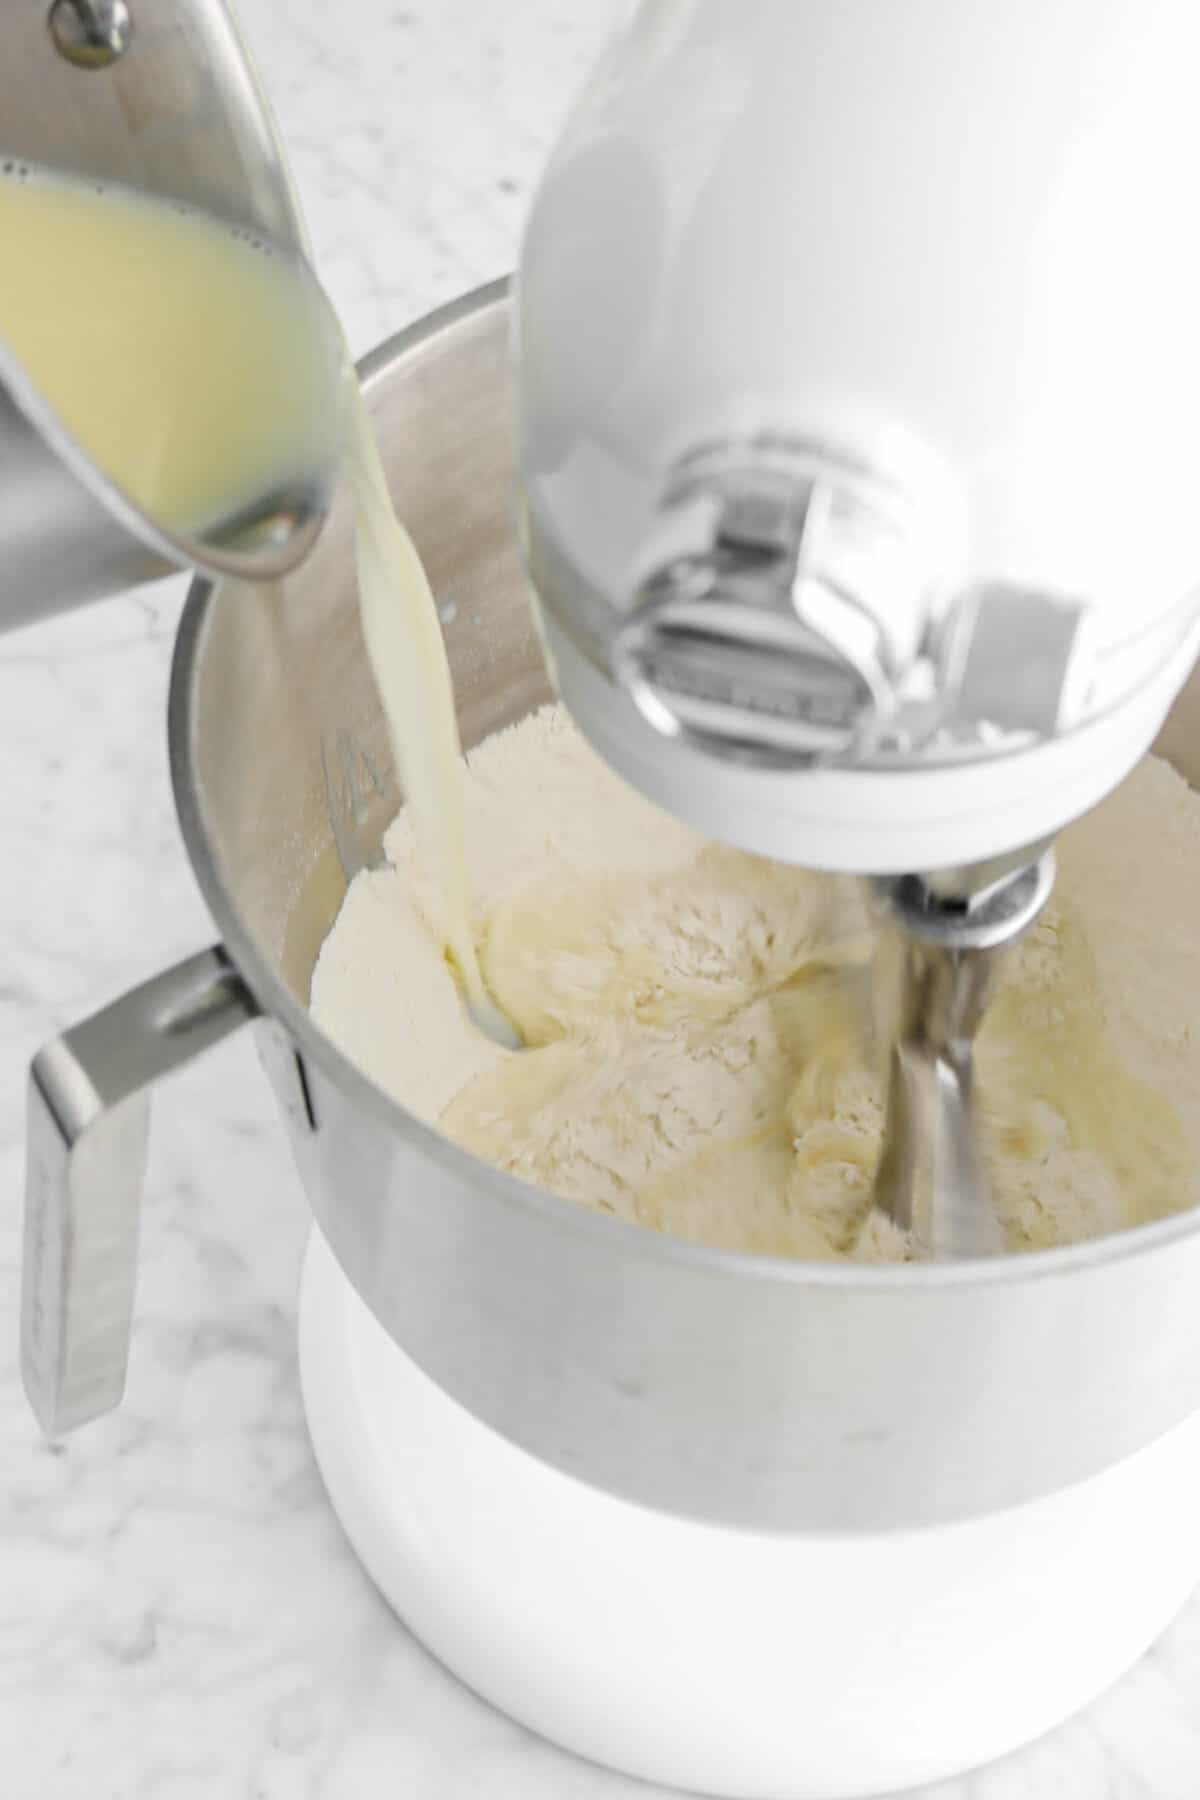 butter mixture being poured into dry ingredients